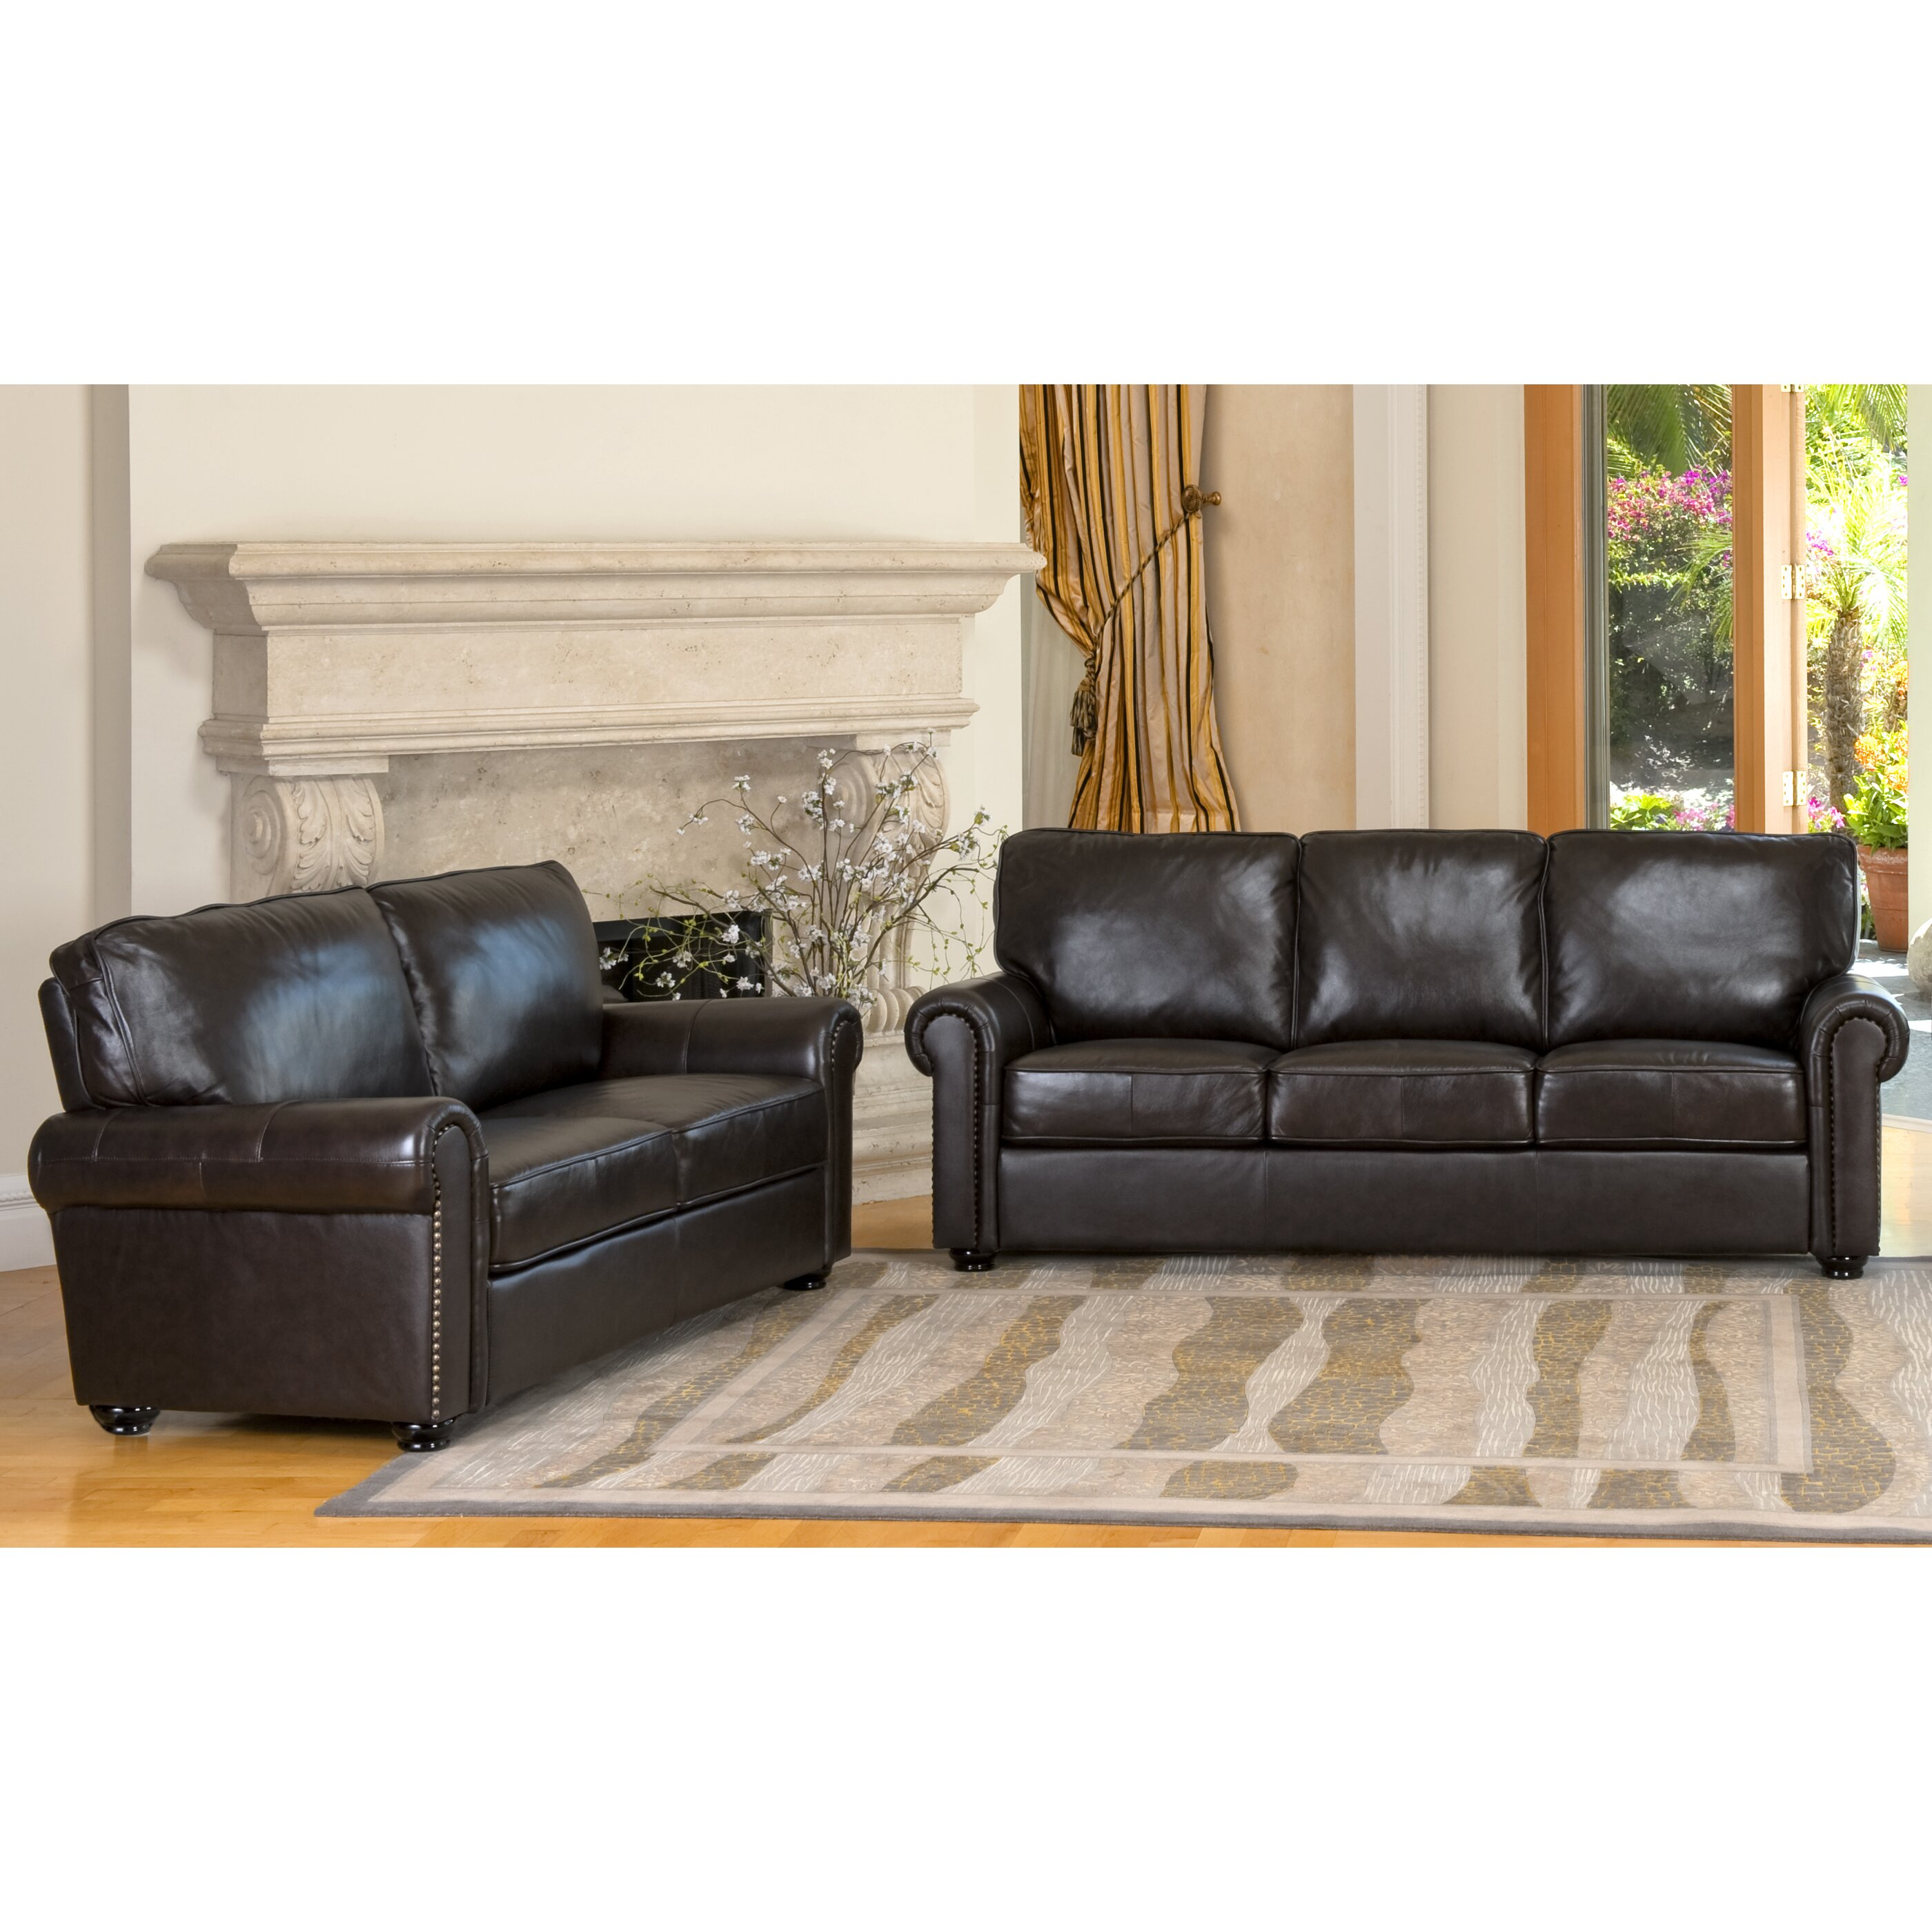 new leather sofa and loveseat set